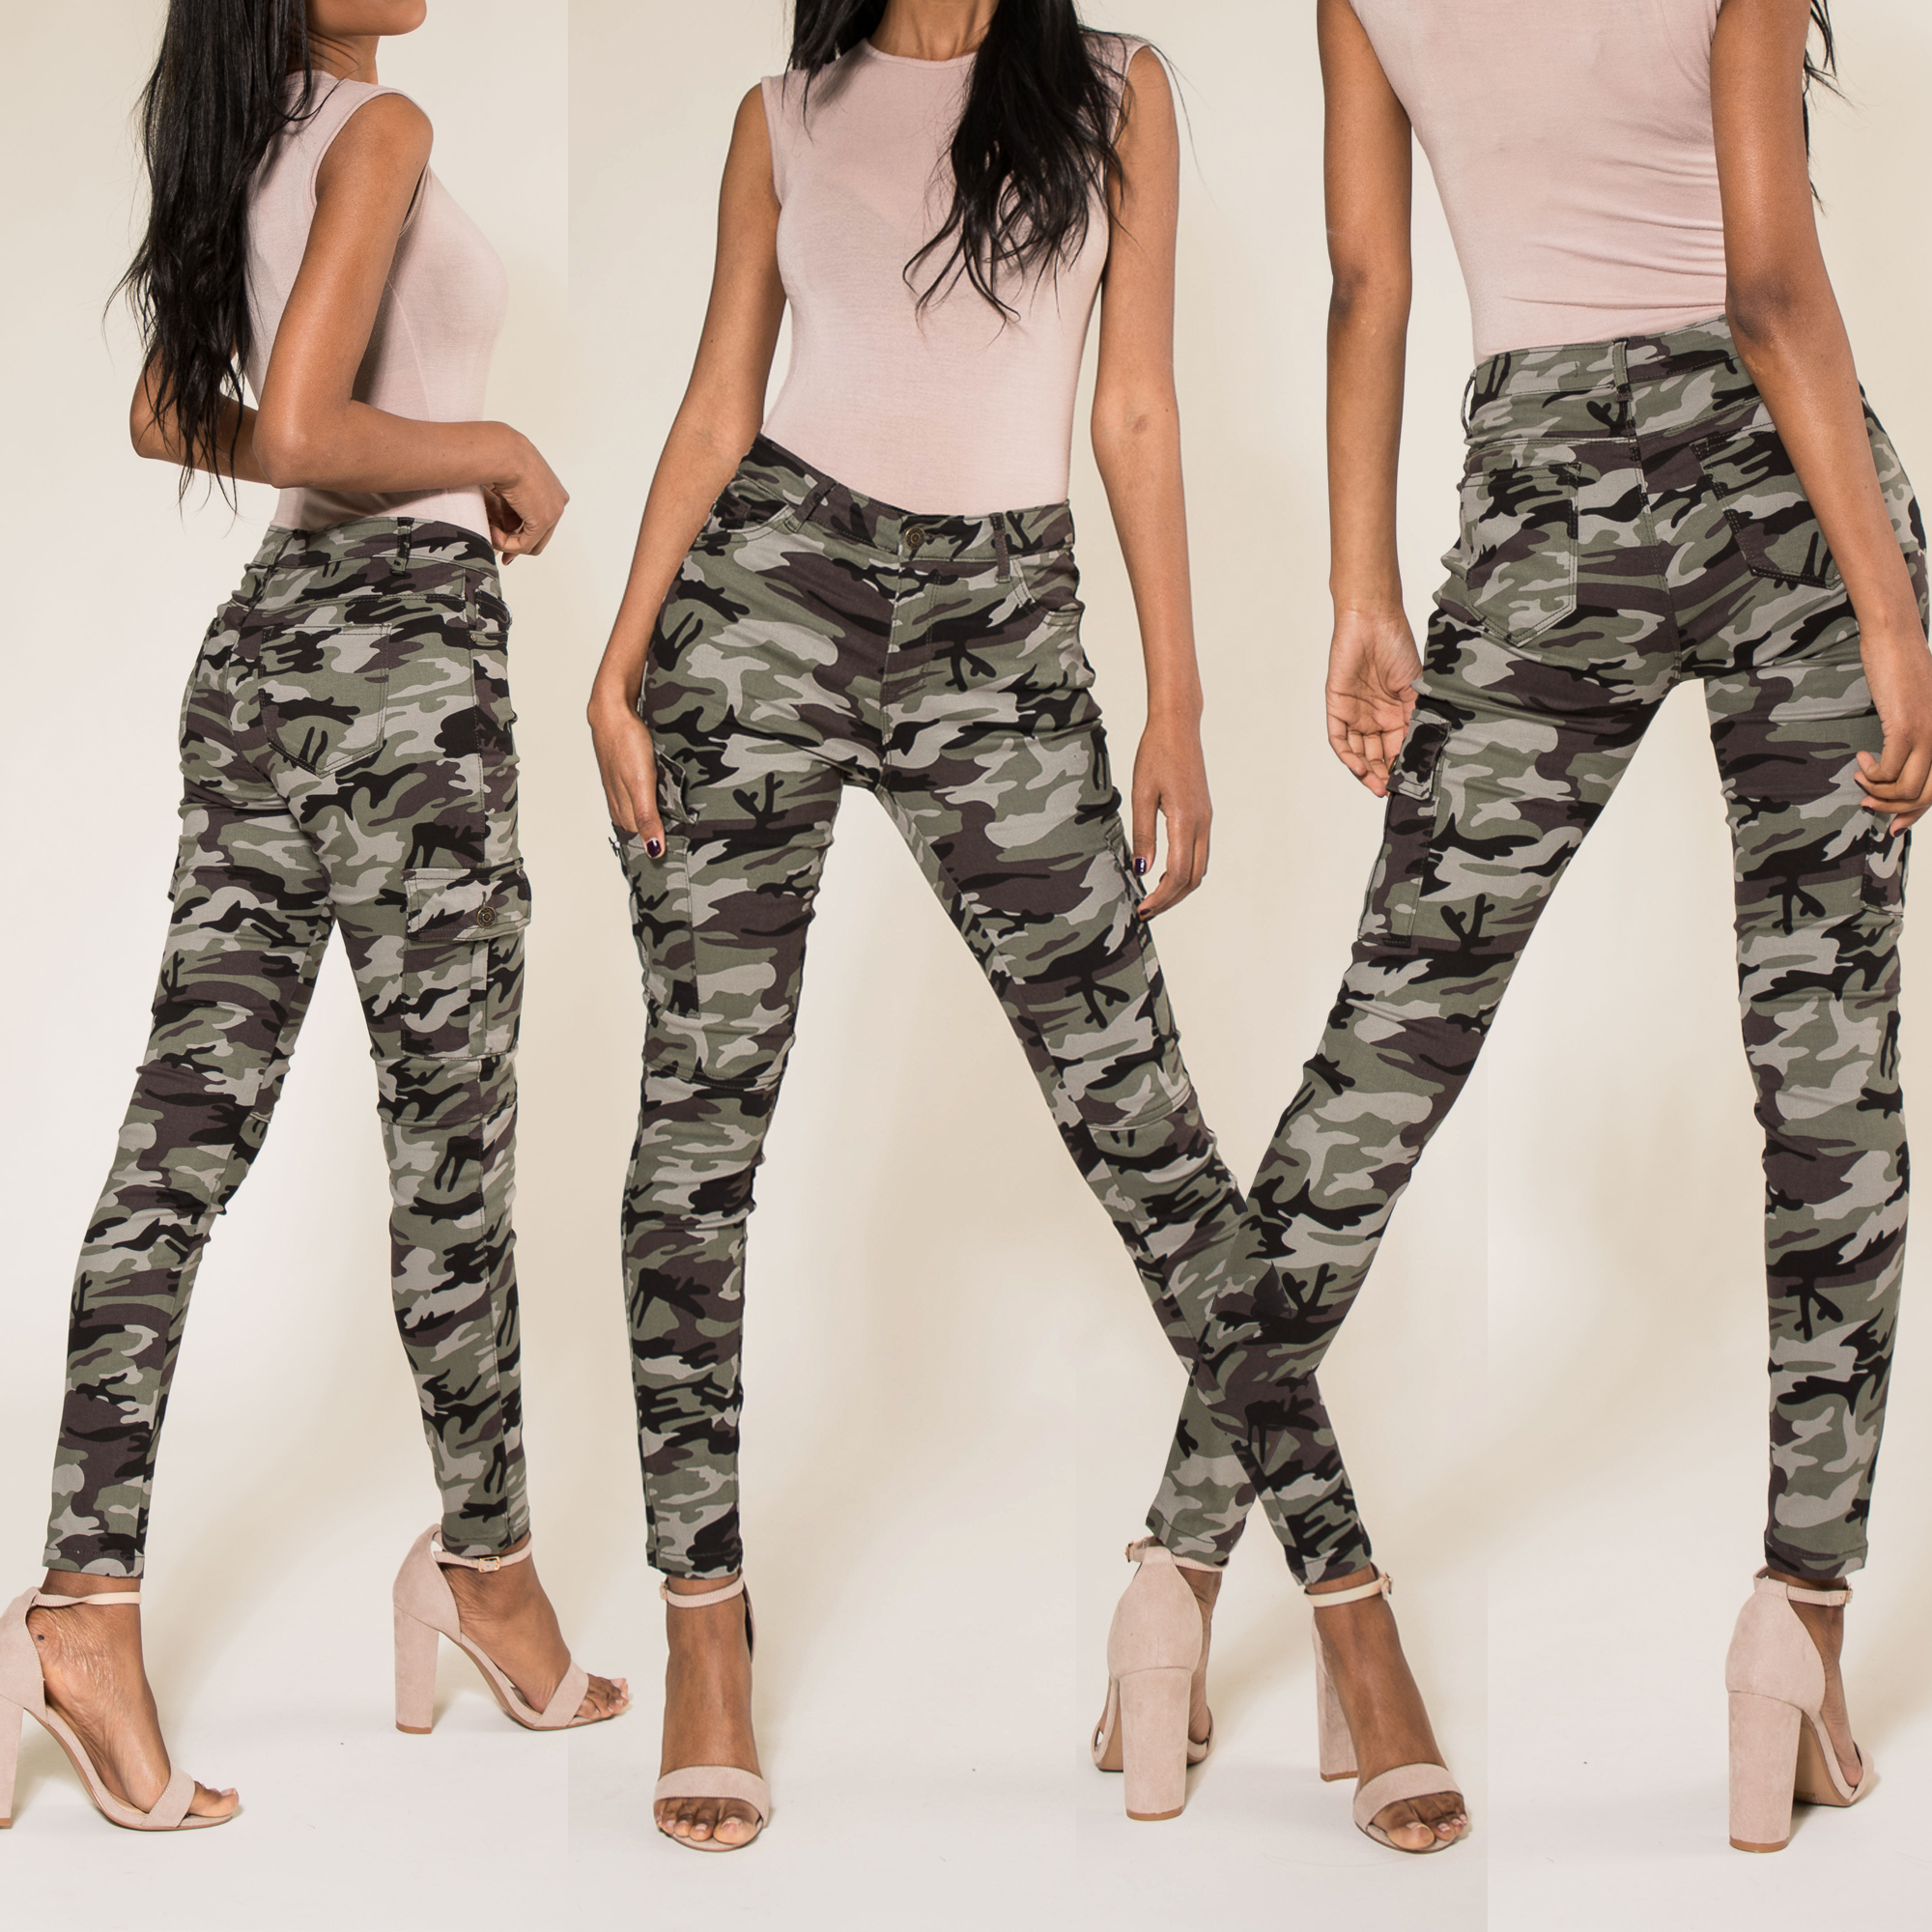 Womens Army Camo Pants Ladies Camouflage Casual Stretchy Skinny Jeans Size 6 14 Ebay